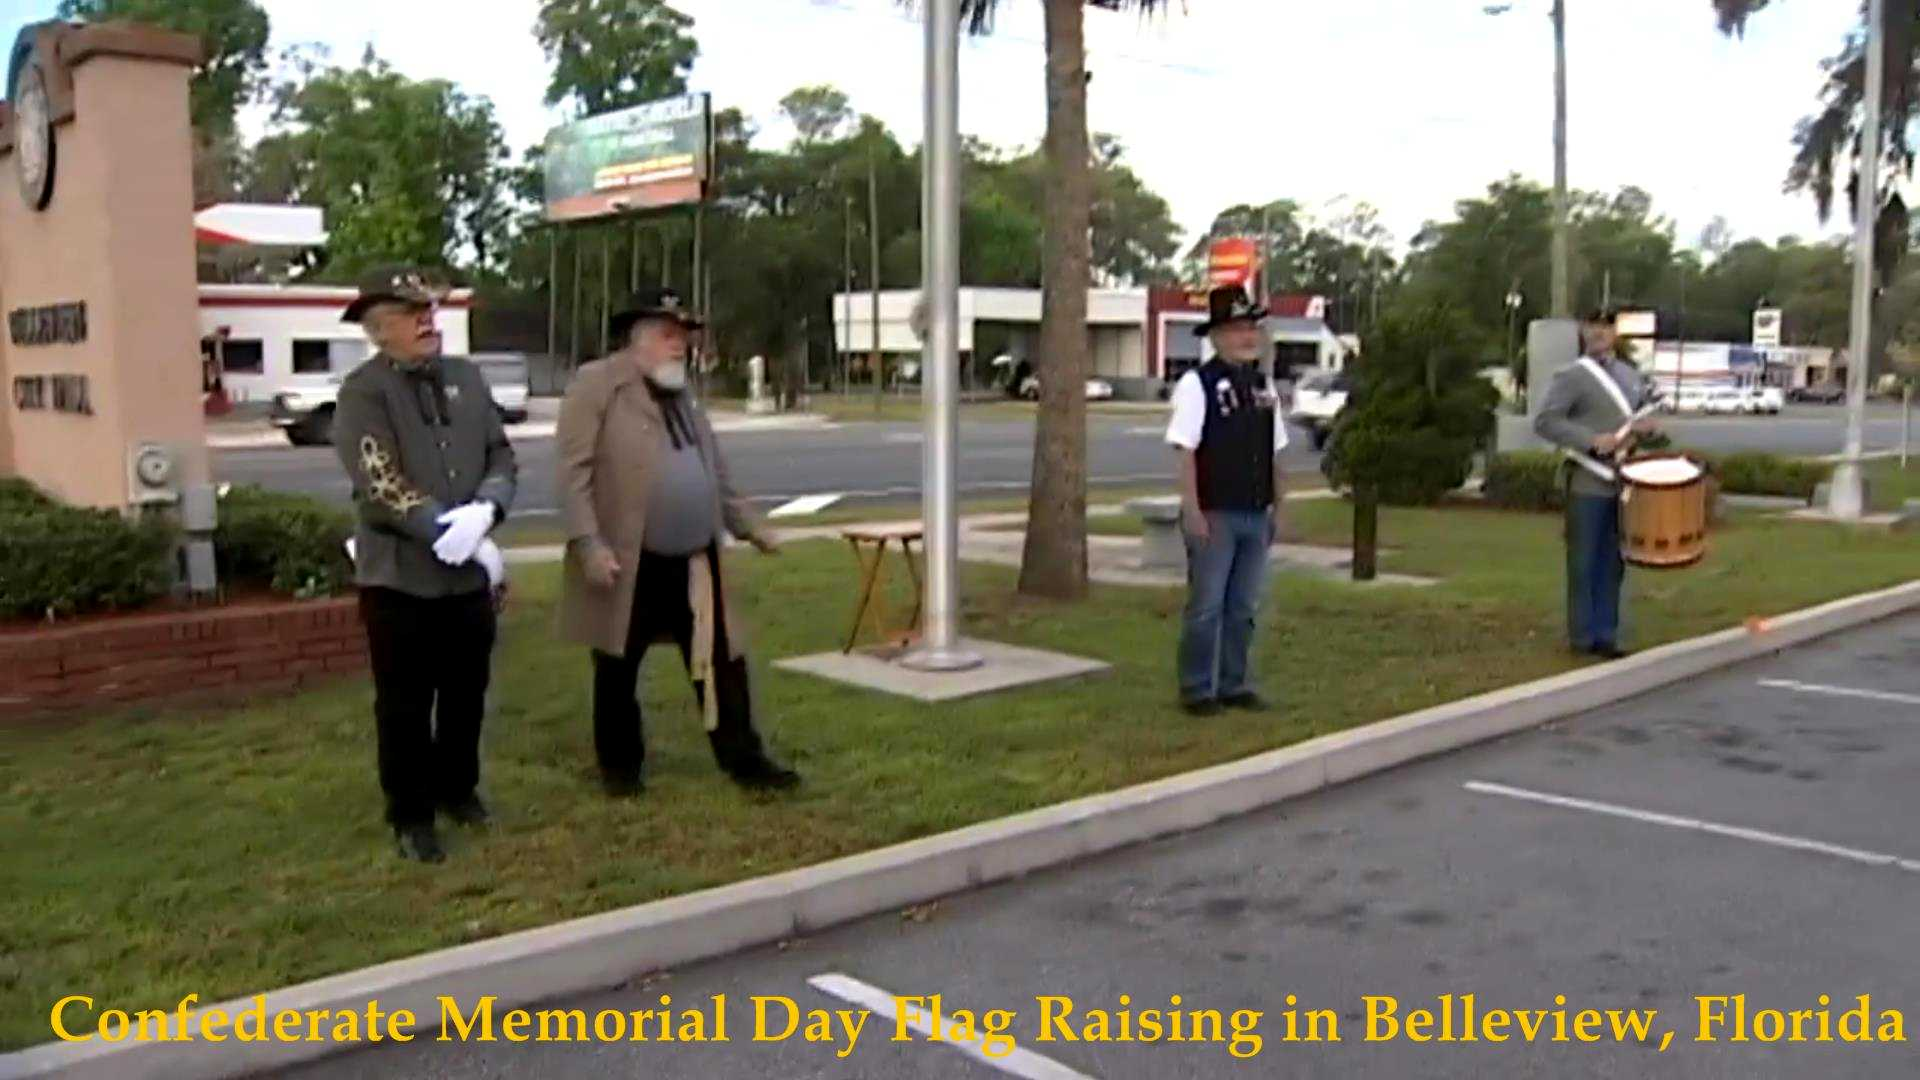 Confederate Flag Raising, Belleview, FL 2017__08